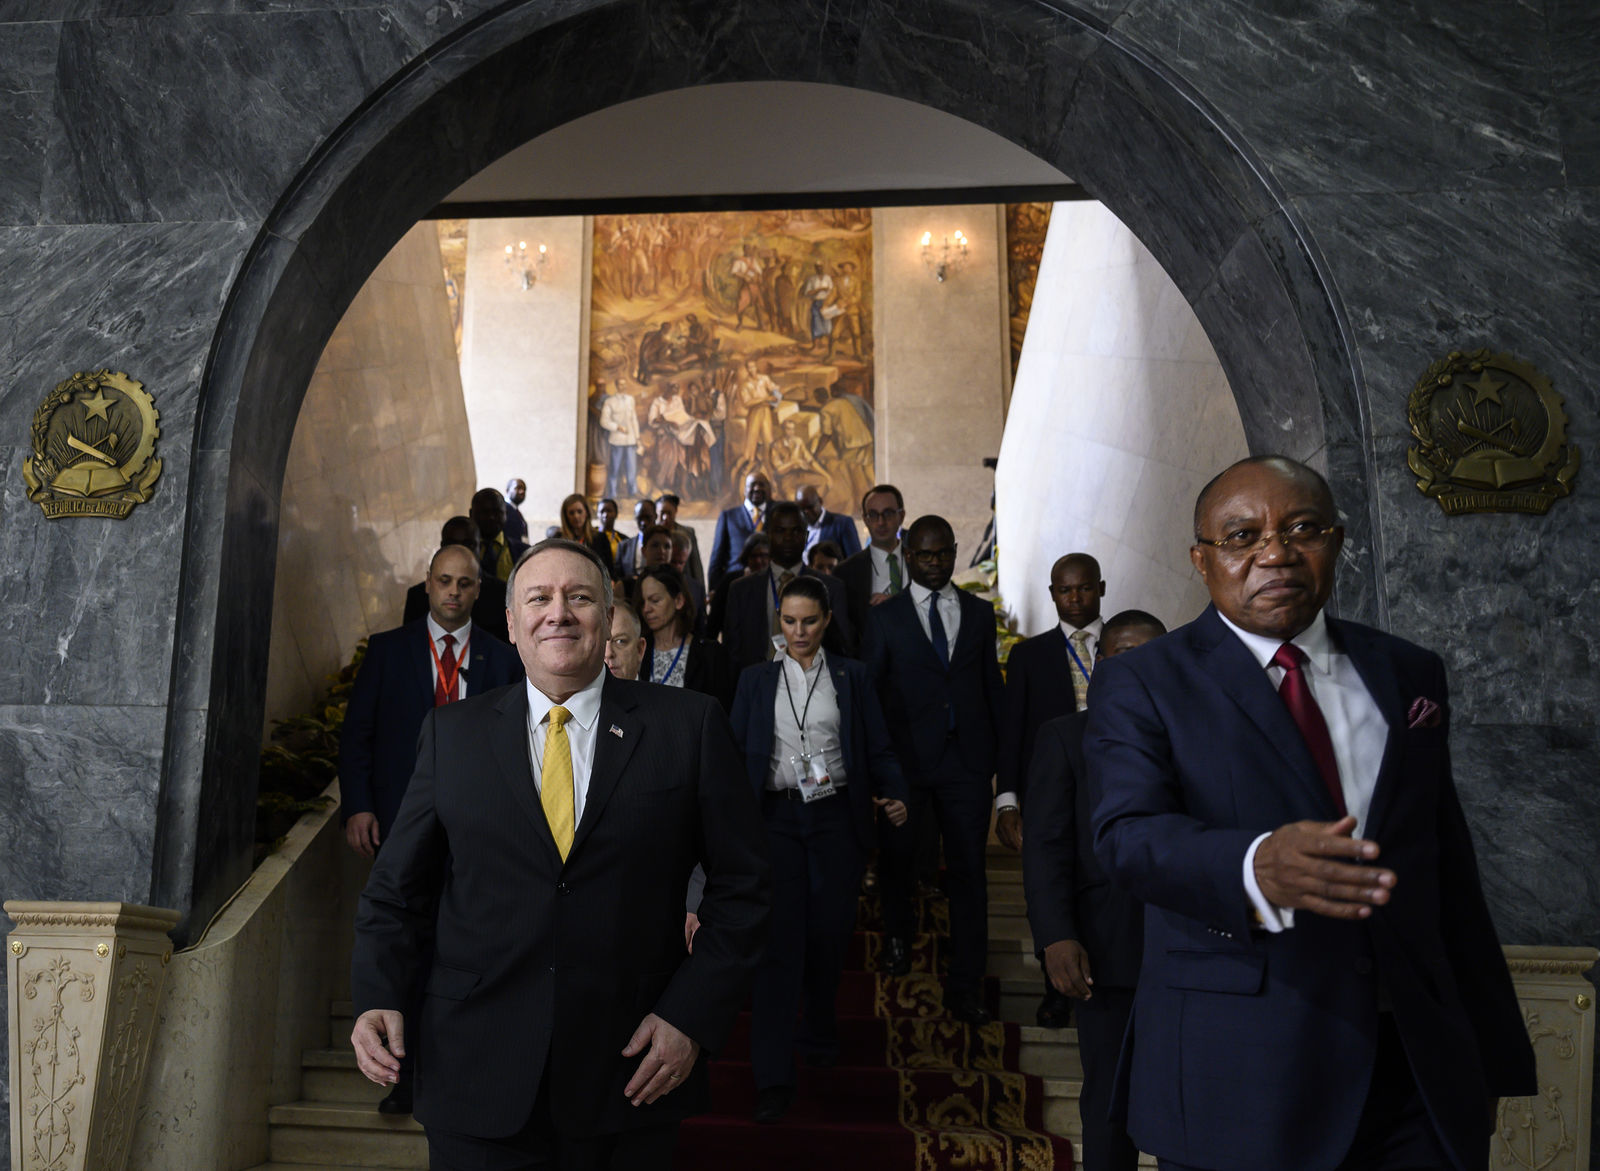 US Secretary of State Mike Pompeo, left, leaves with Angola Foreign Minister, Manuel Domingos Augusto after a press conference at the Ministry of Foreign Affairs in Luanda, Angola, Monday Feb. 17, 2020. (Andrew Caballero-Reynolds/Pool via AP)